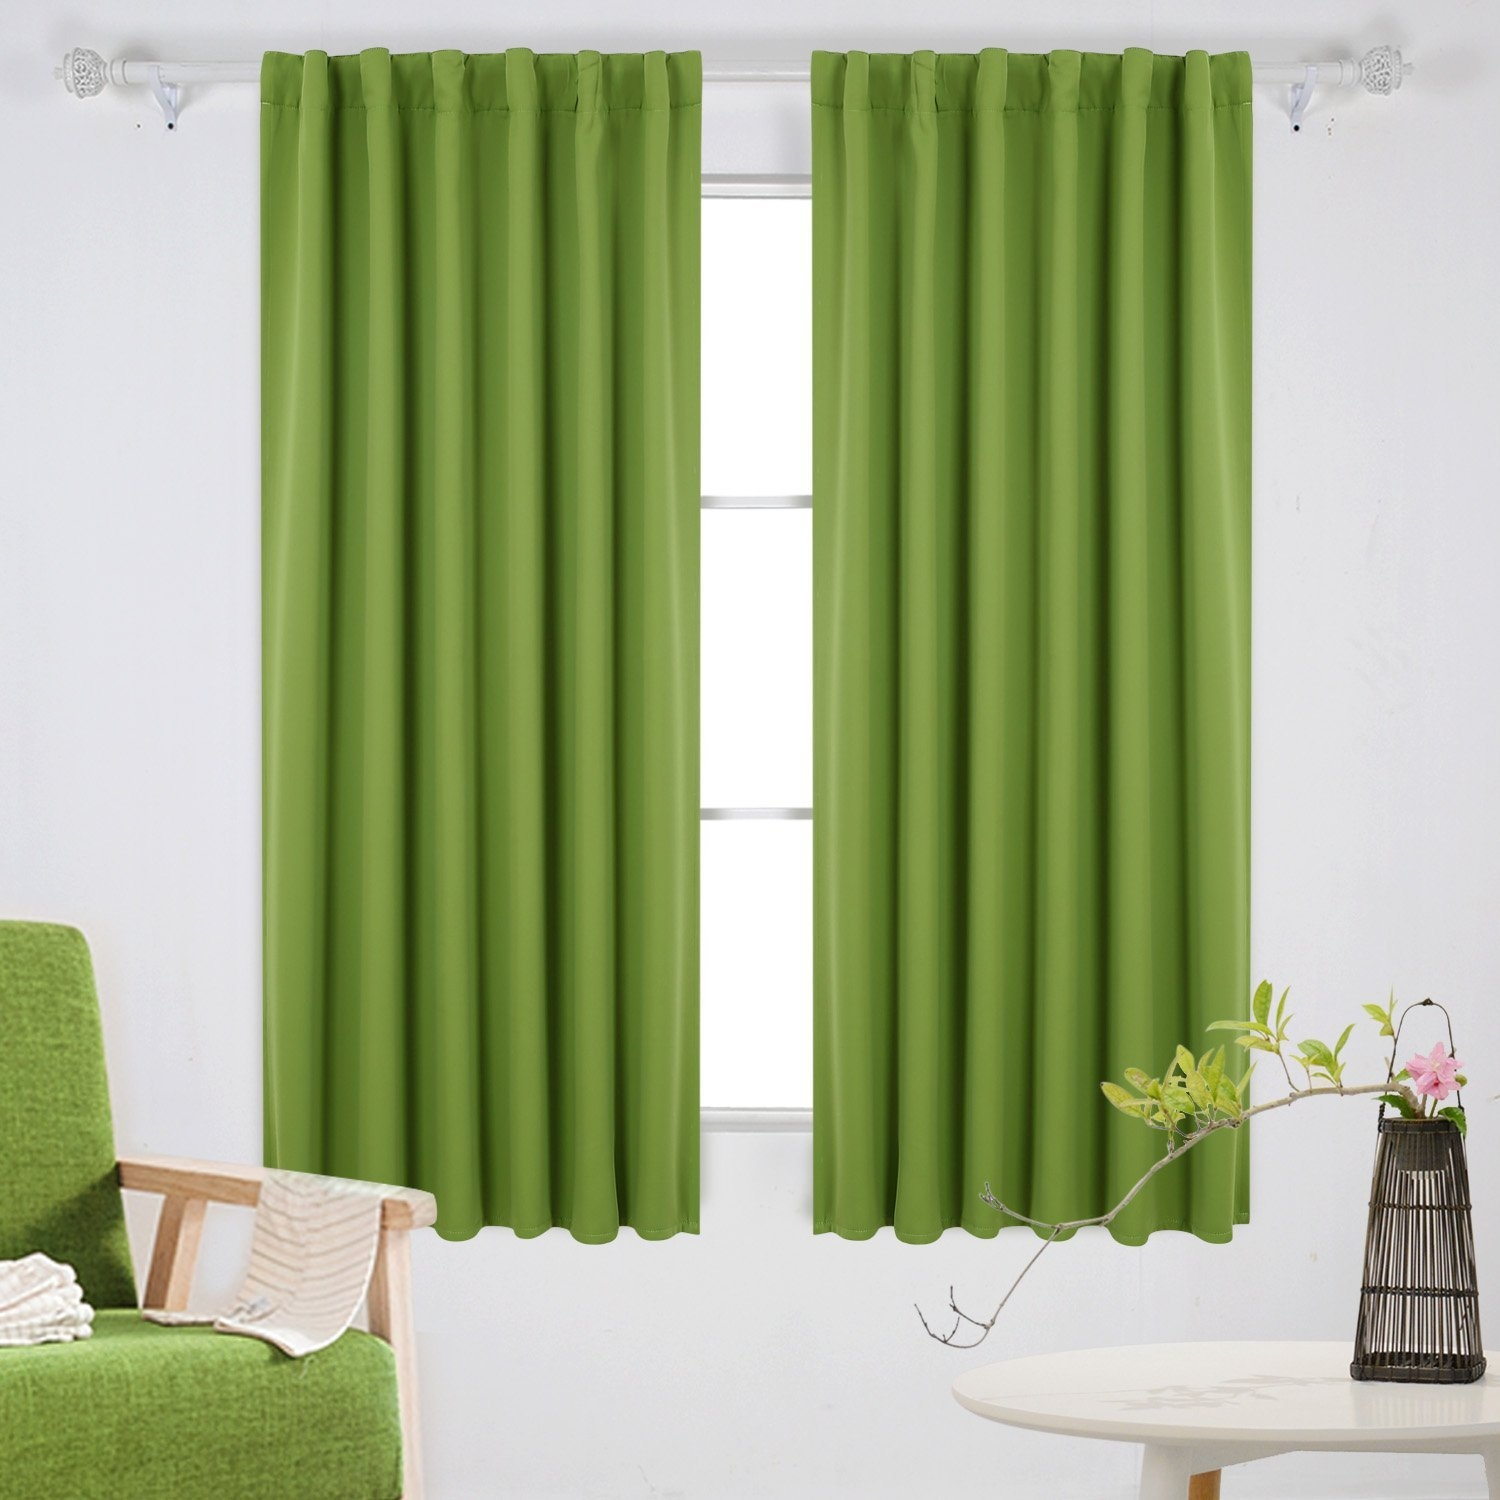 Blackout Thermal Curtains Sale Ease Bedding With Style With Striped Thermal Curtains (Image 5 of 15)